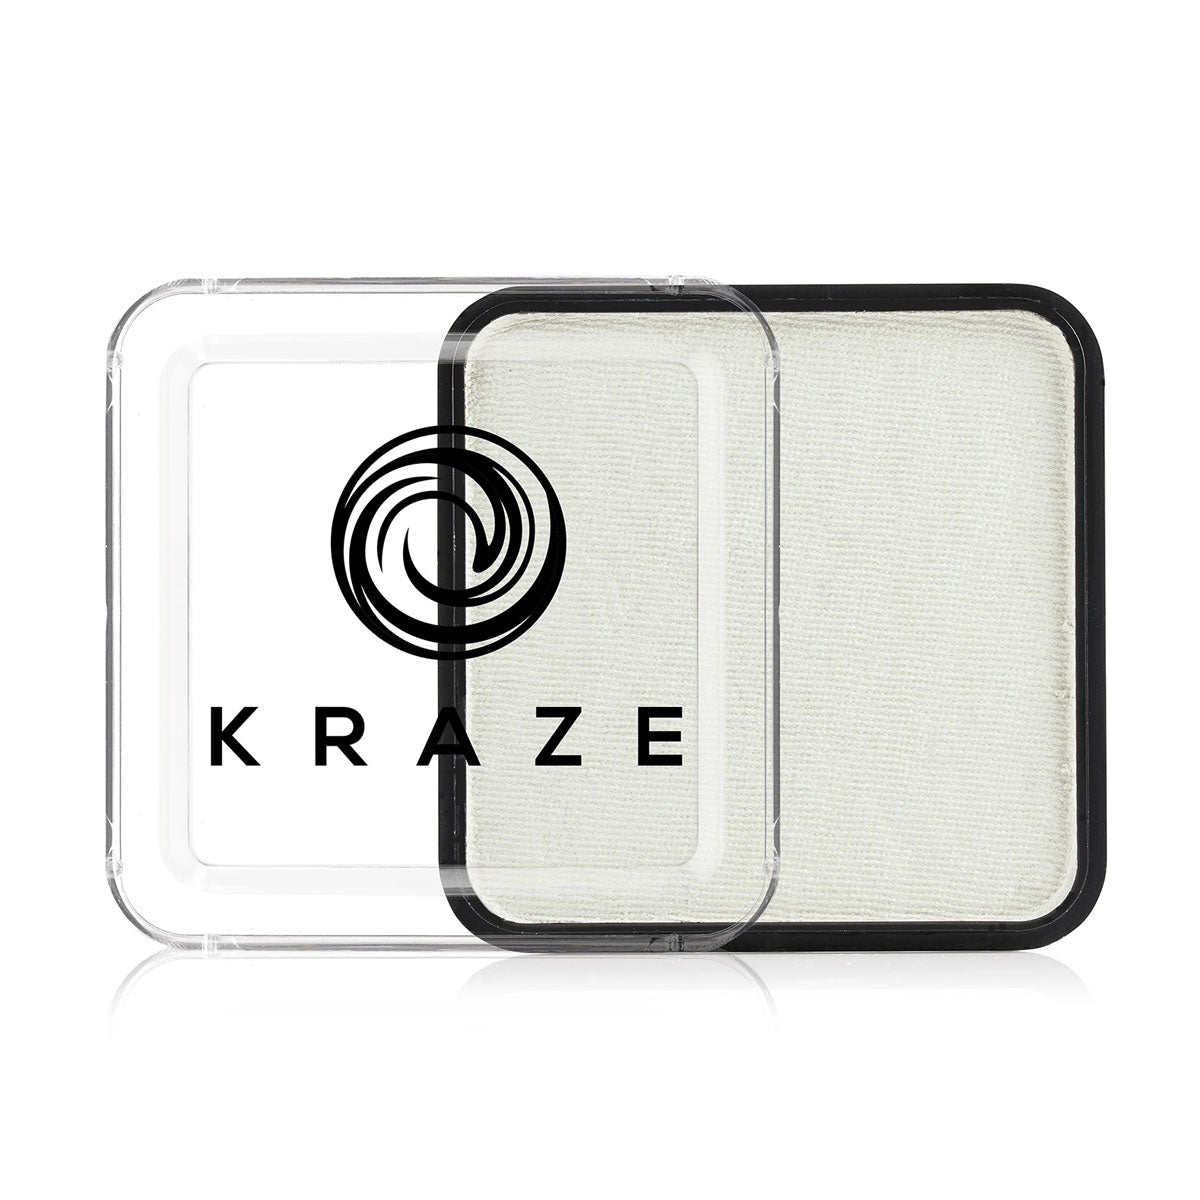 Metallic White Square 25g - Kraze